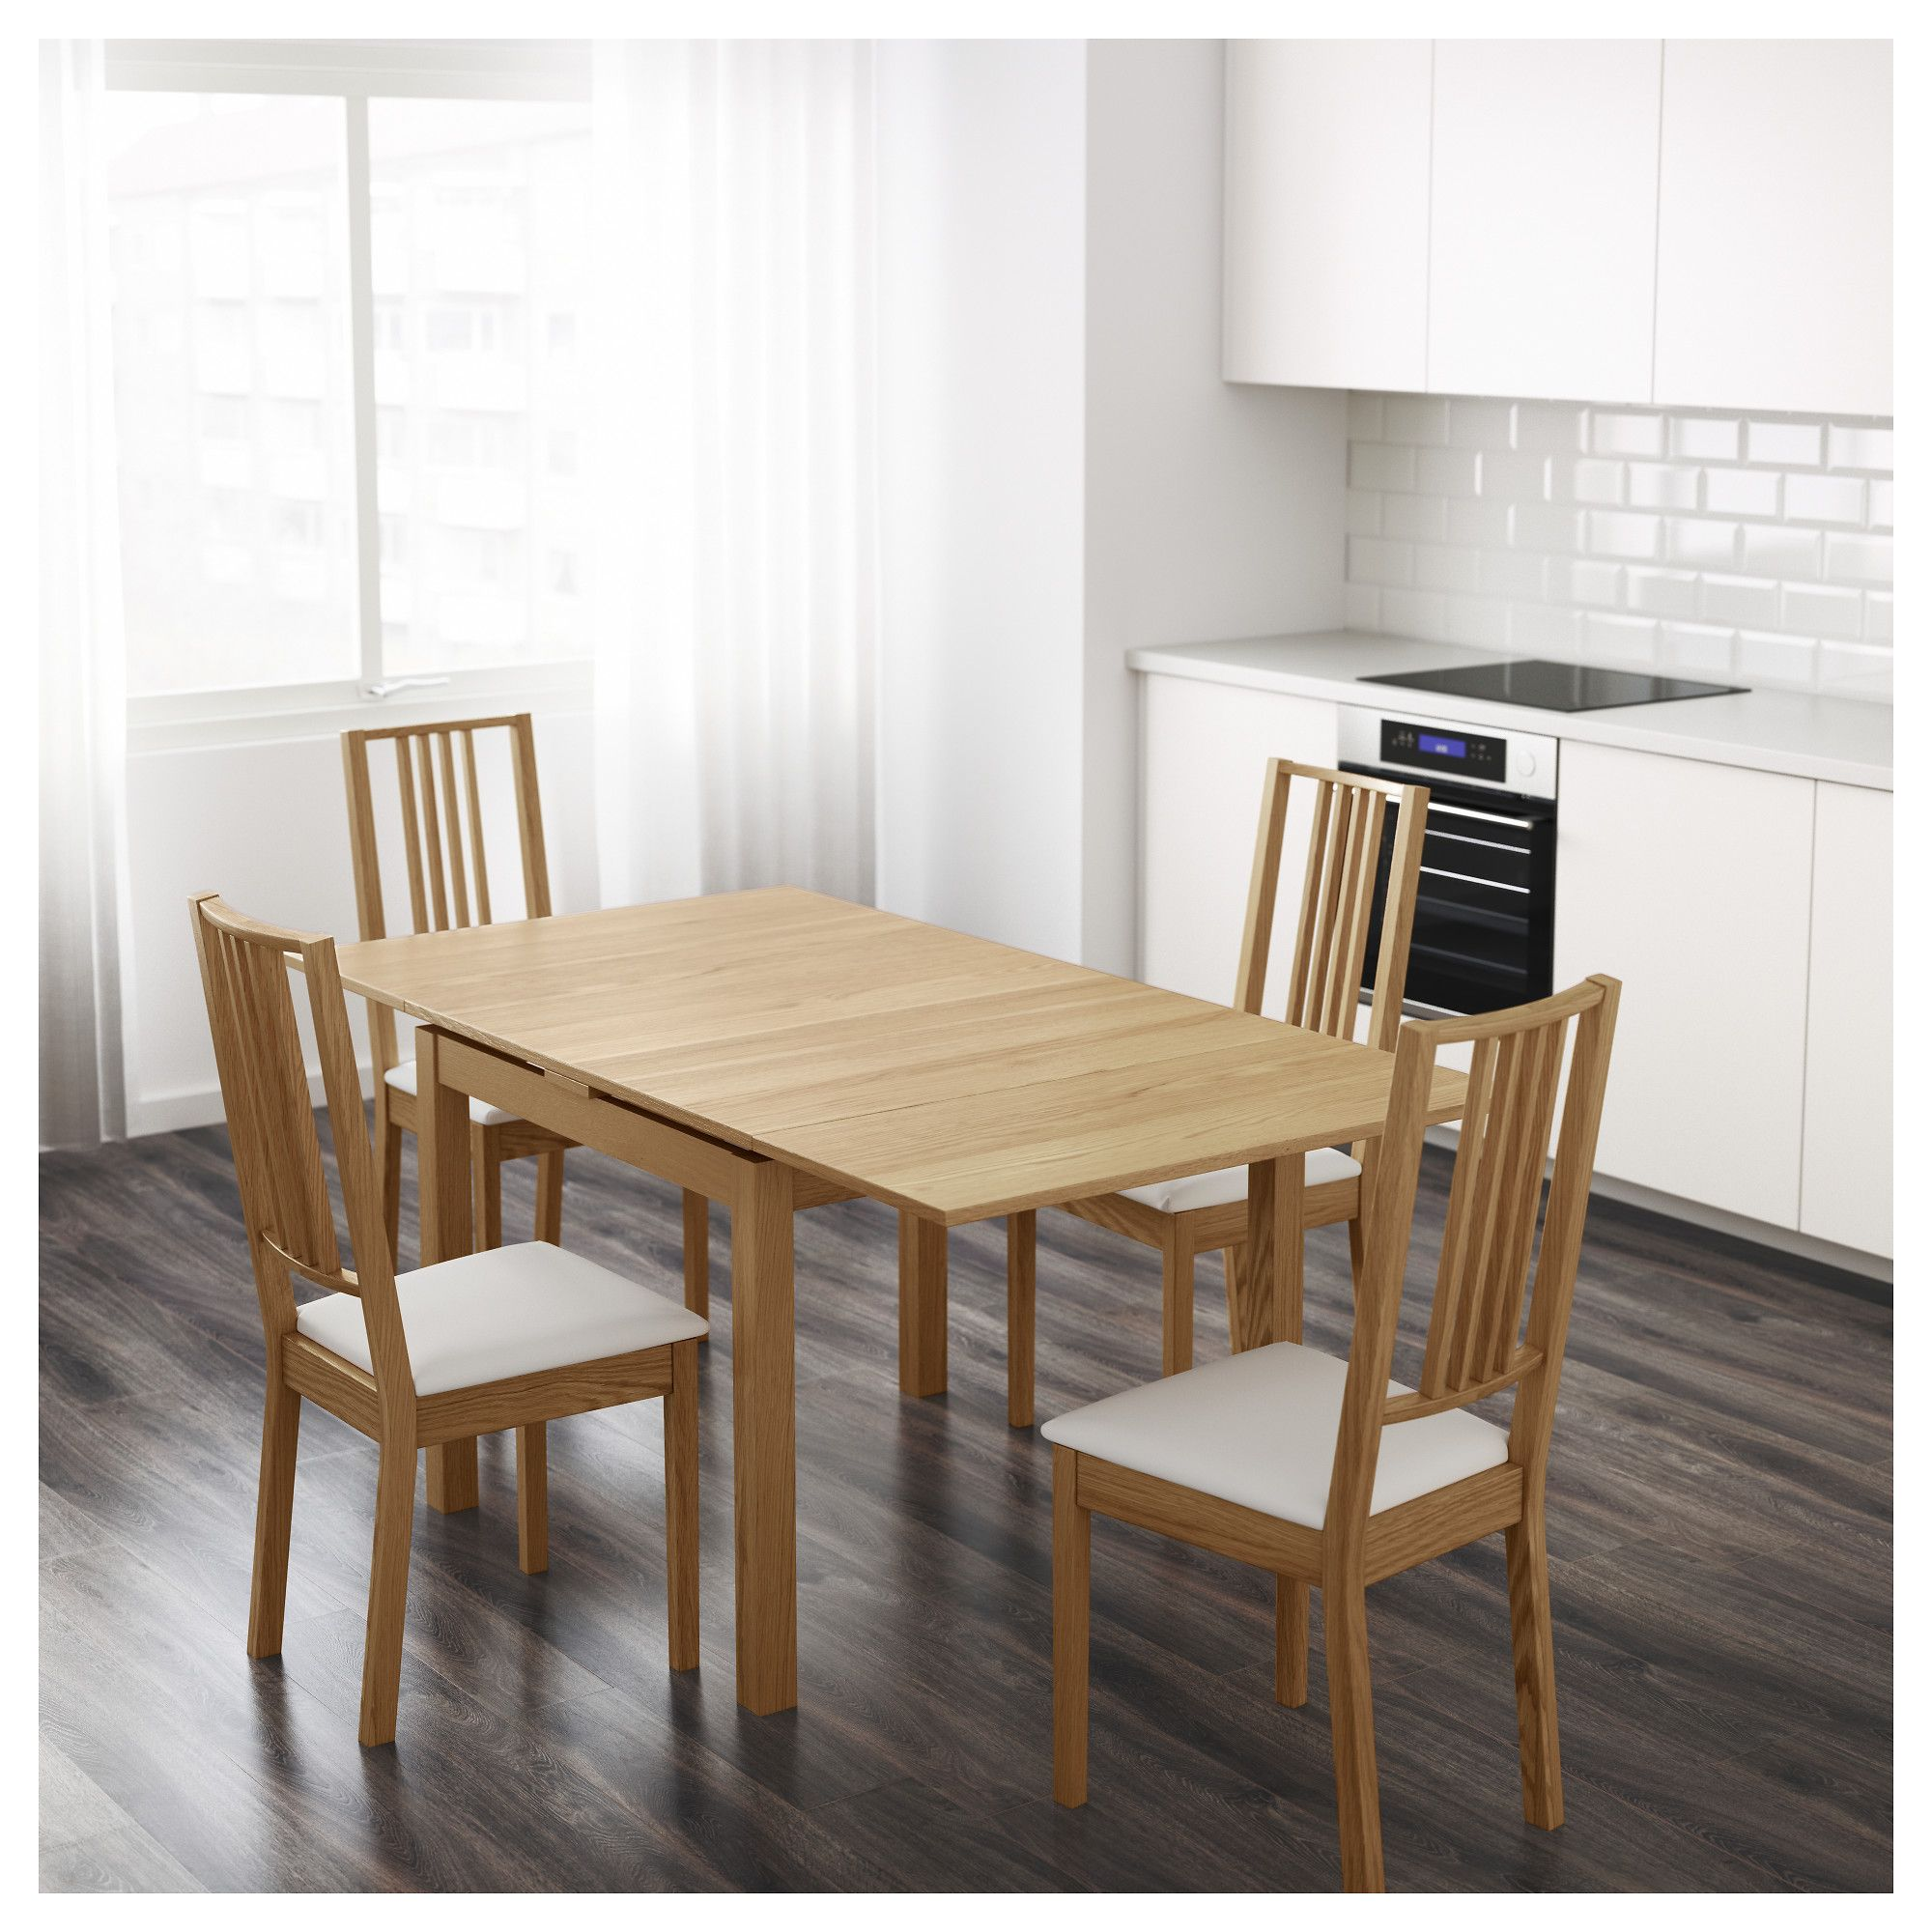 Bjursta Extendable Table Oak Veneer 90 129 168x90 Cm Dining Room Tables Ikea Dining Table Compact Table And Chairs